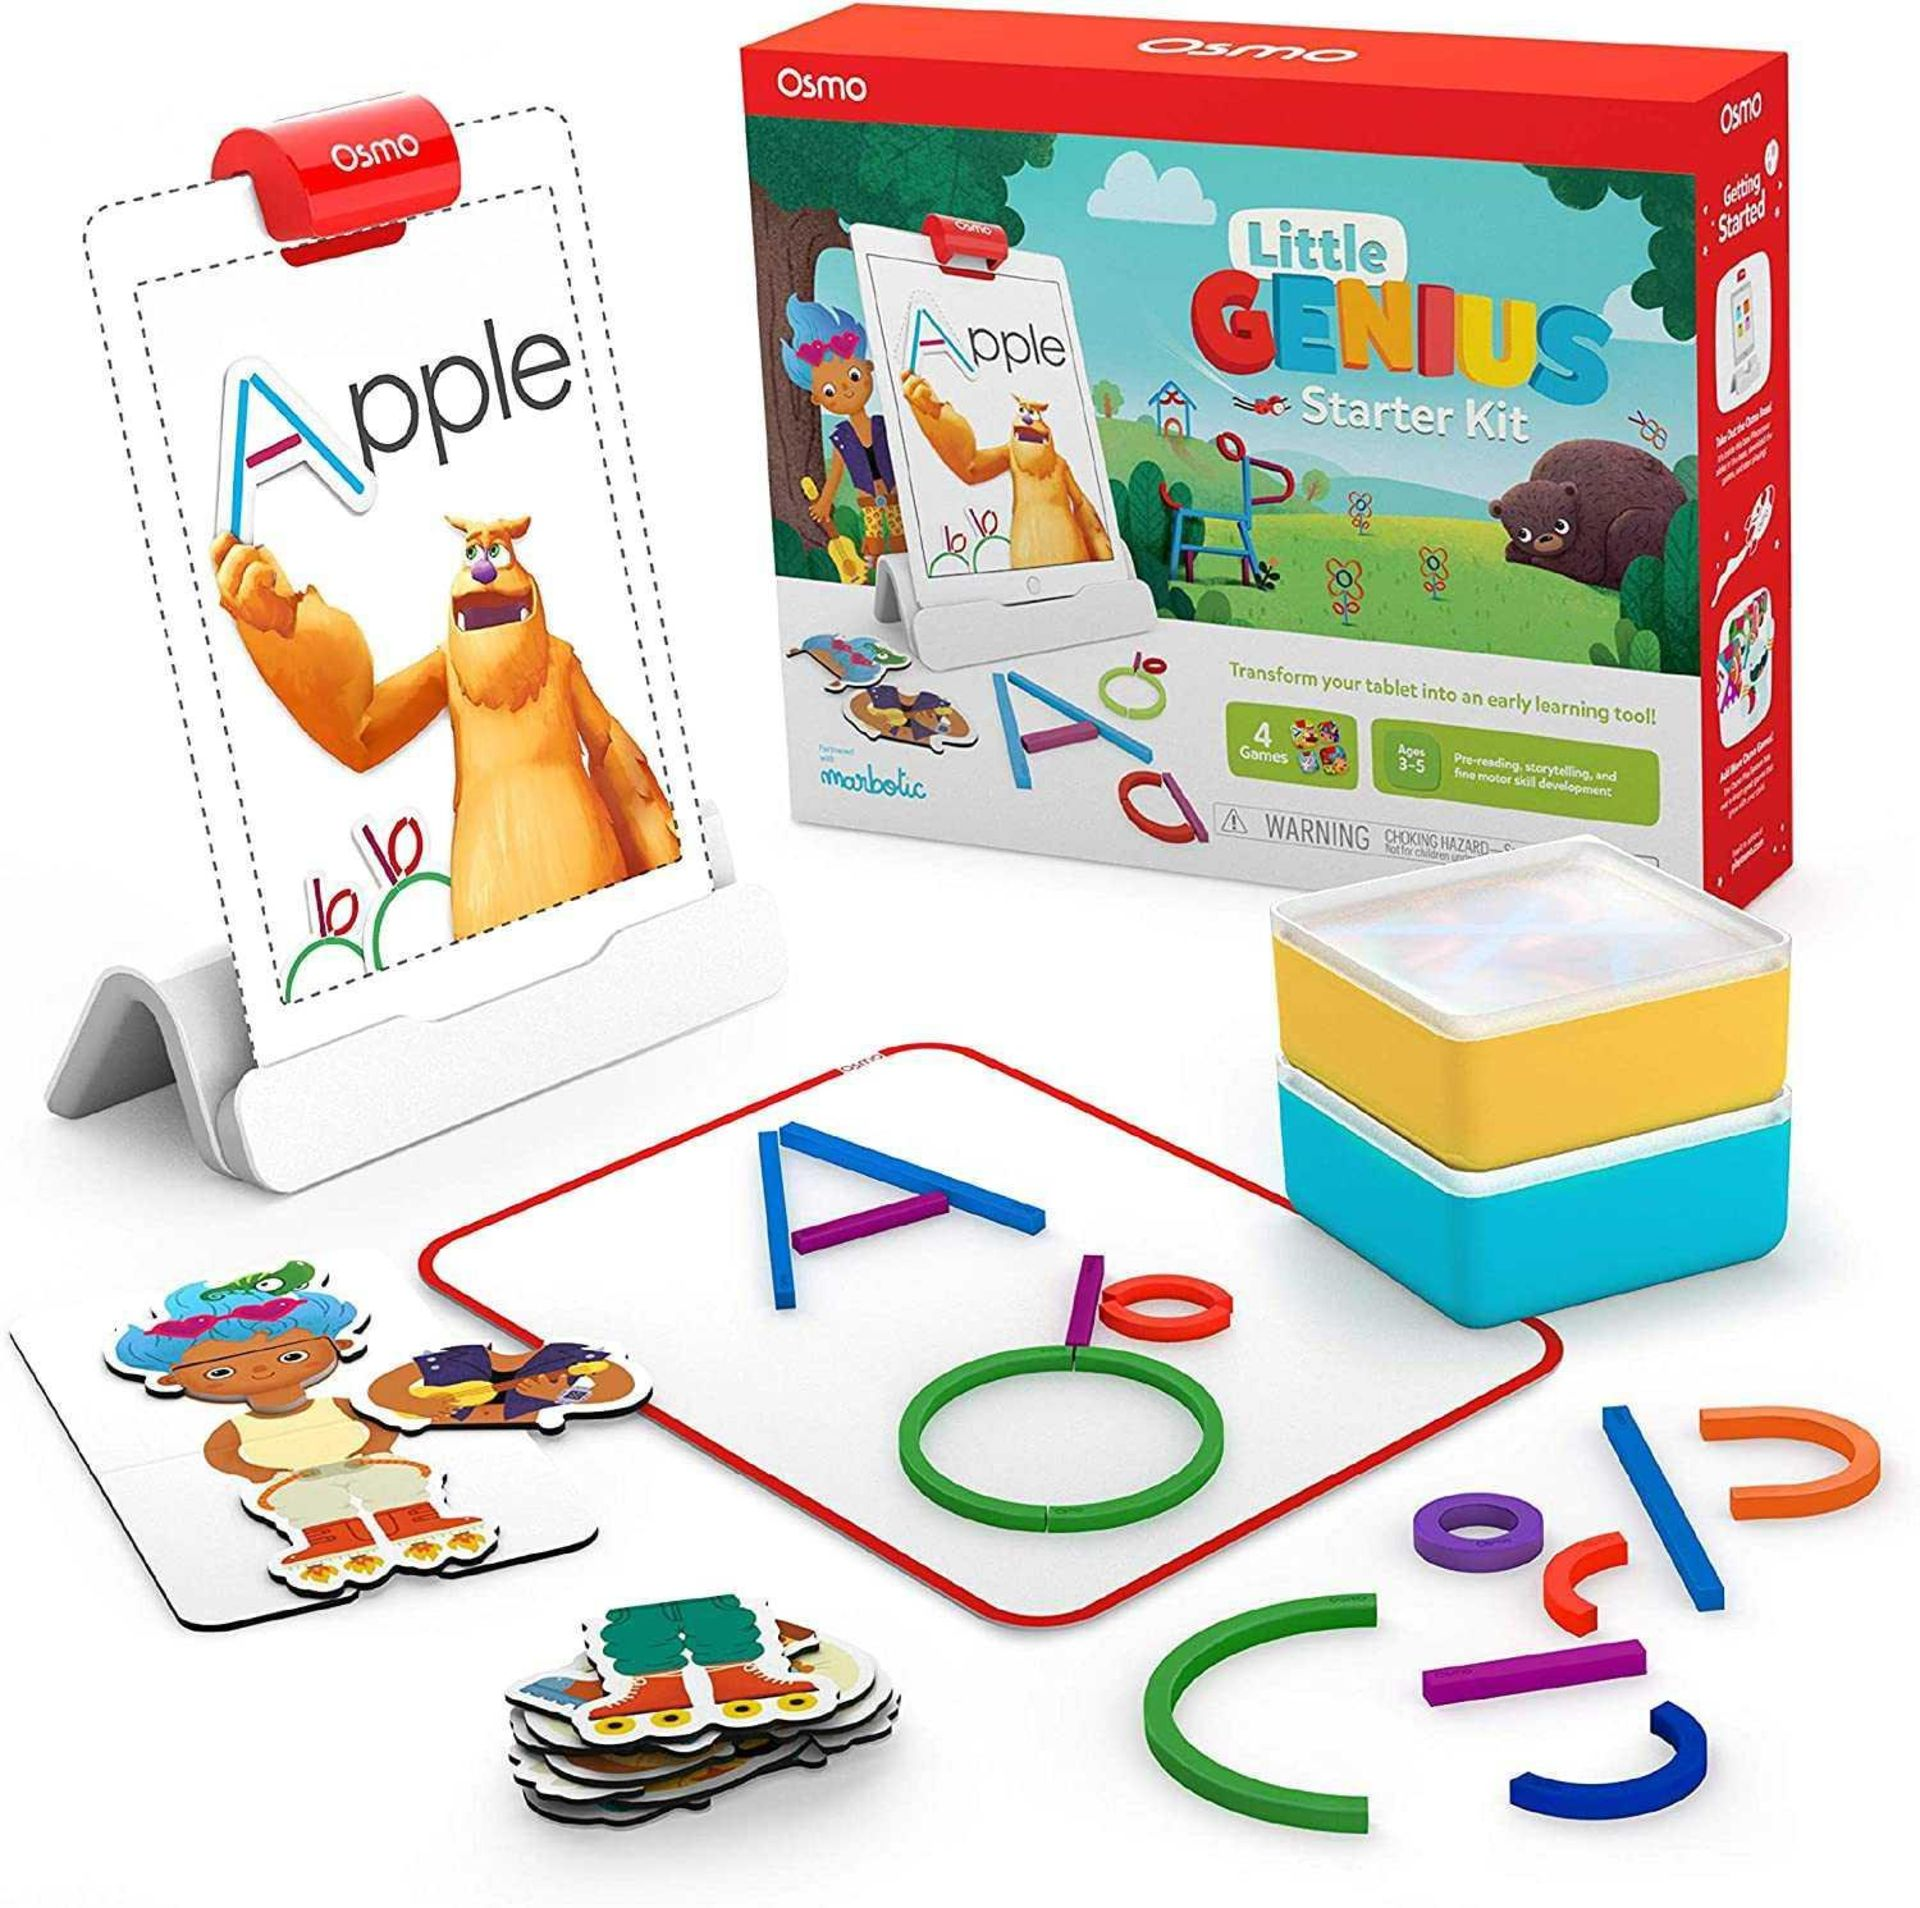 Lot 82 - RRP £120 Boxed Osmo Little Genius Starter Kit, Transform Your Tablet Into An Early Learning Tool